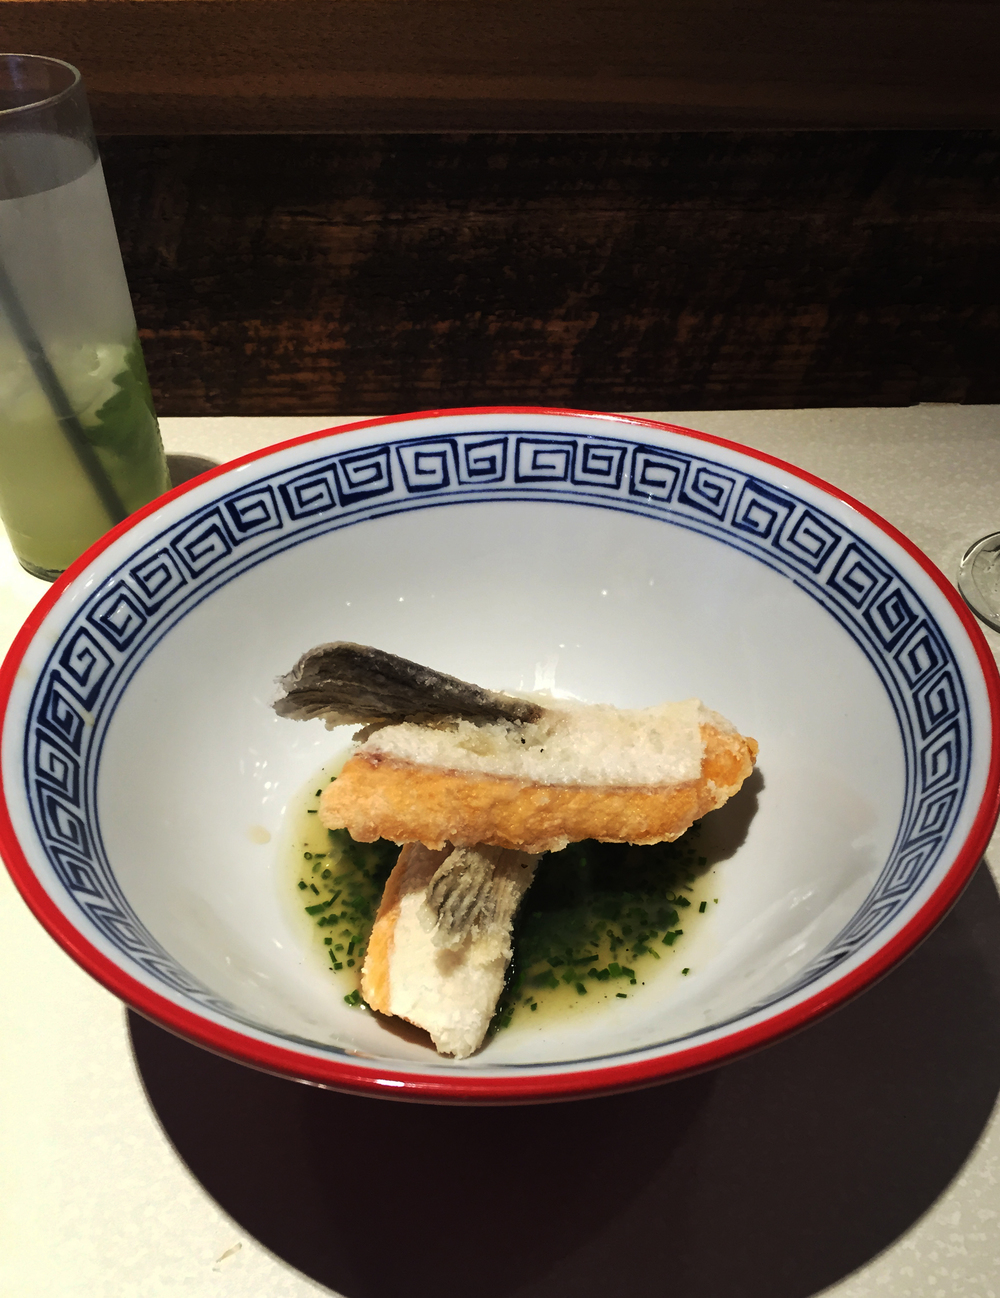 Salmon fins - well plated, but a bit underwhelming